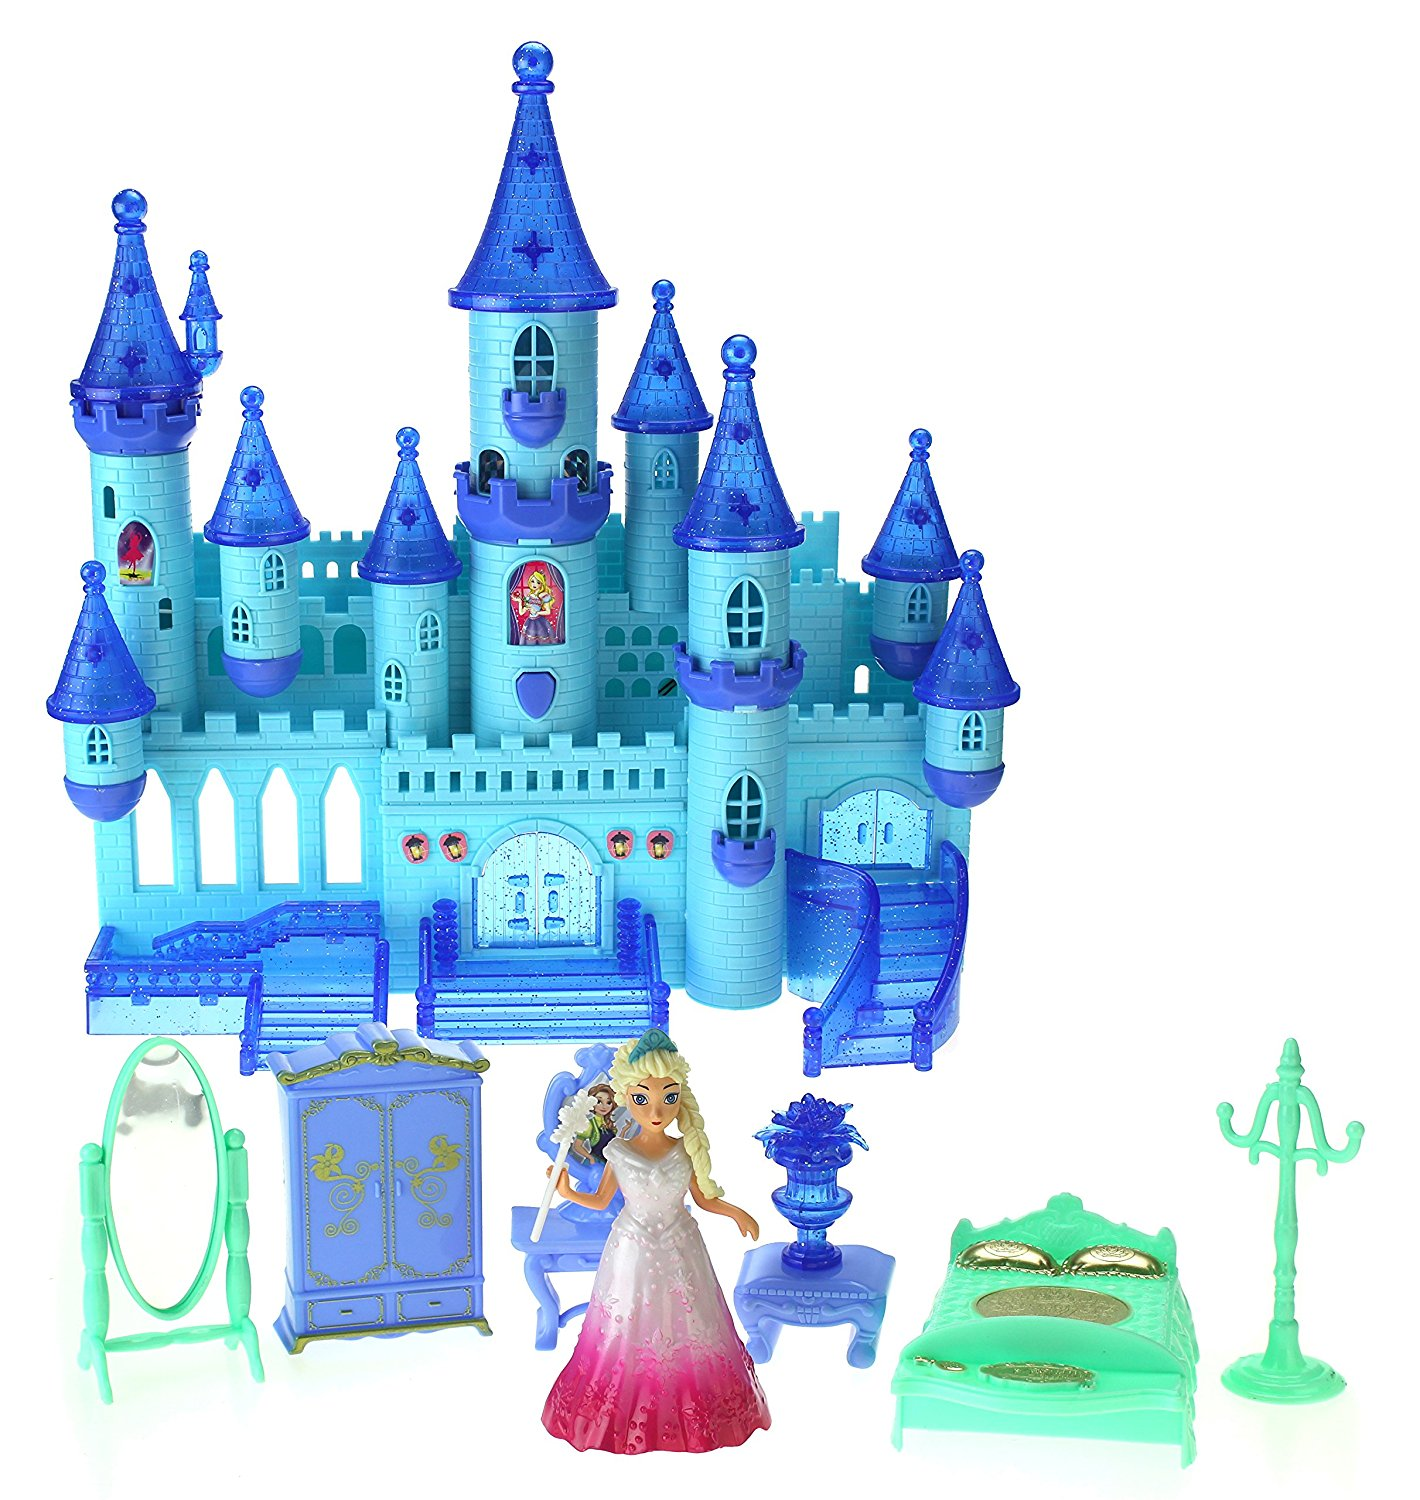 My Dream My Beauty Battery Operated Toy Castle Dollhouse w  Light up Effects, Music, Doll Princess Figure,... by Velocity Toys